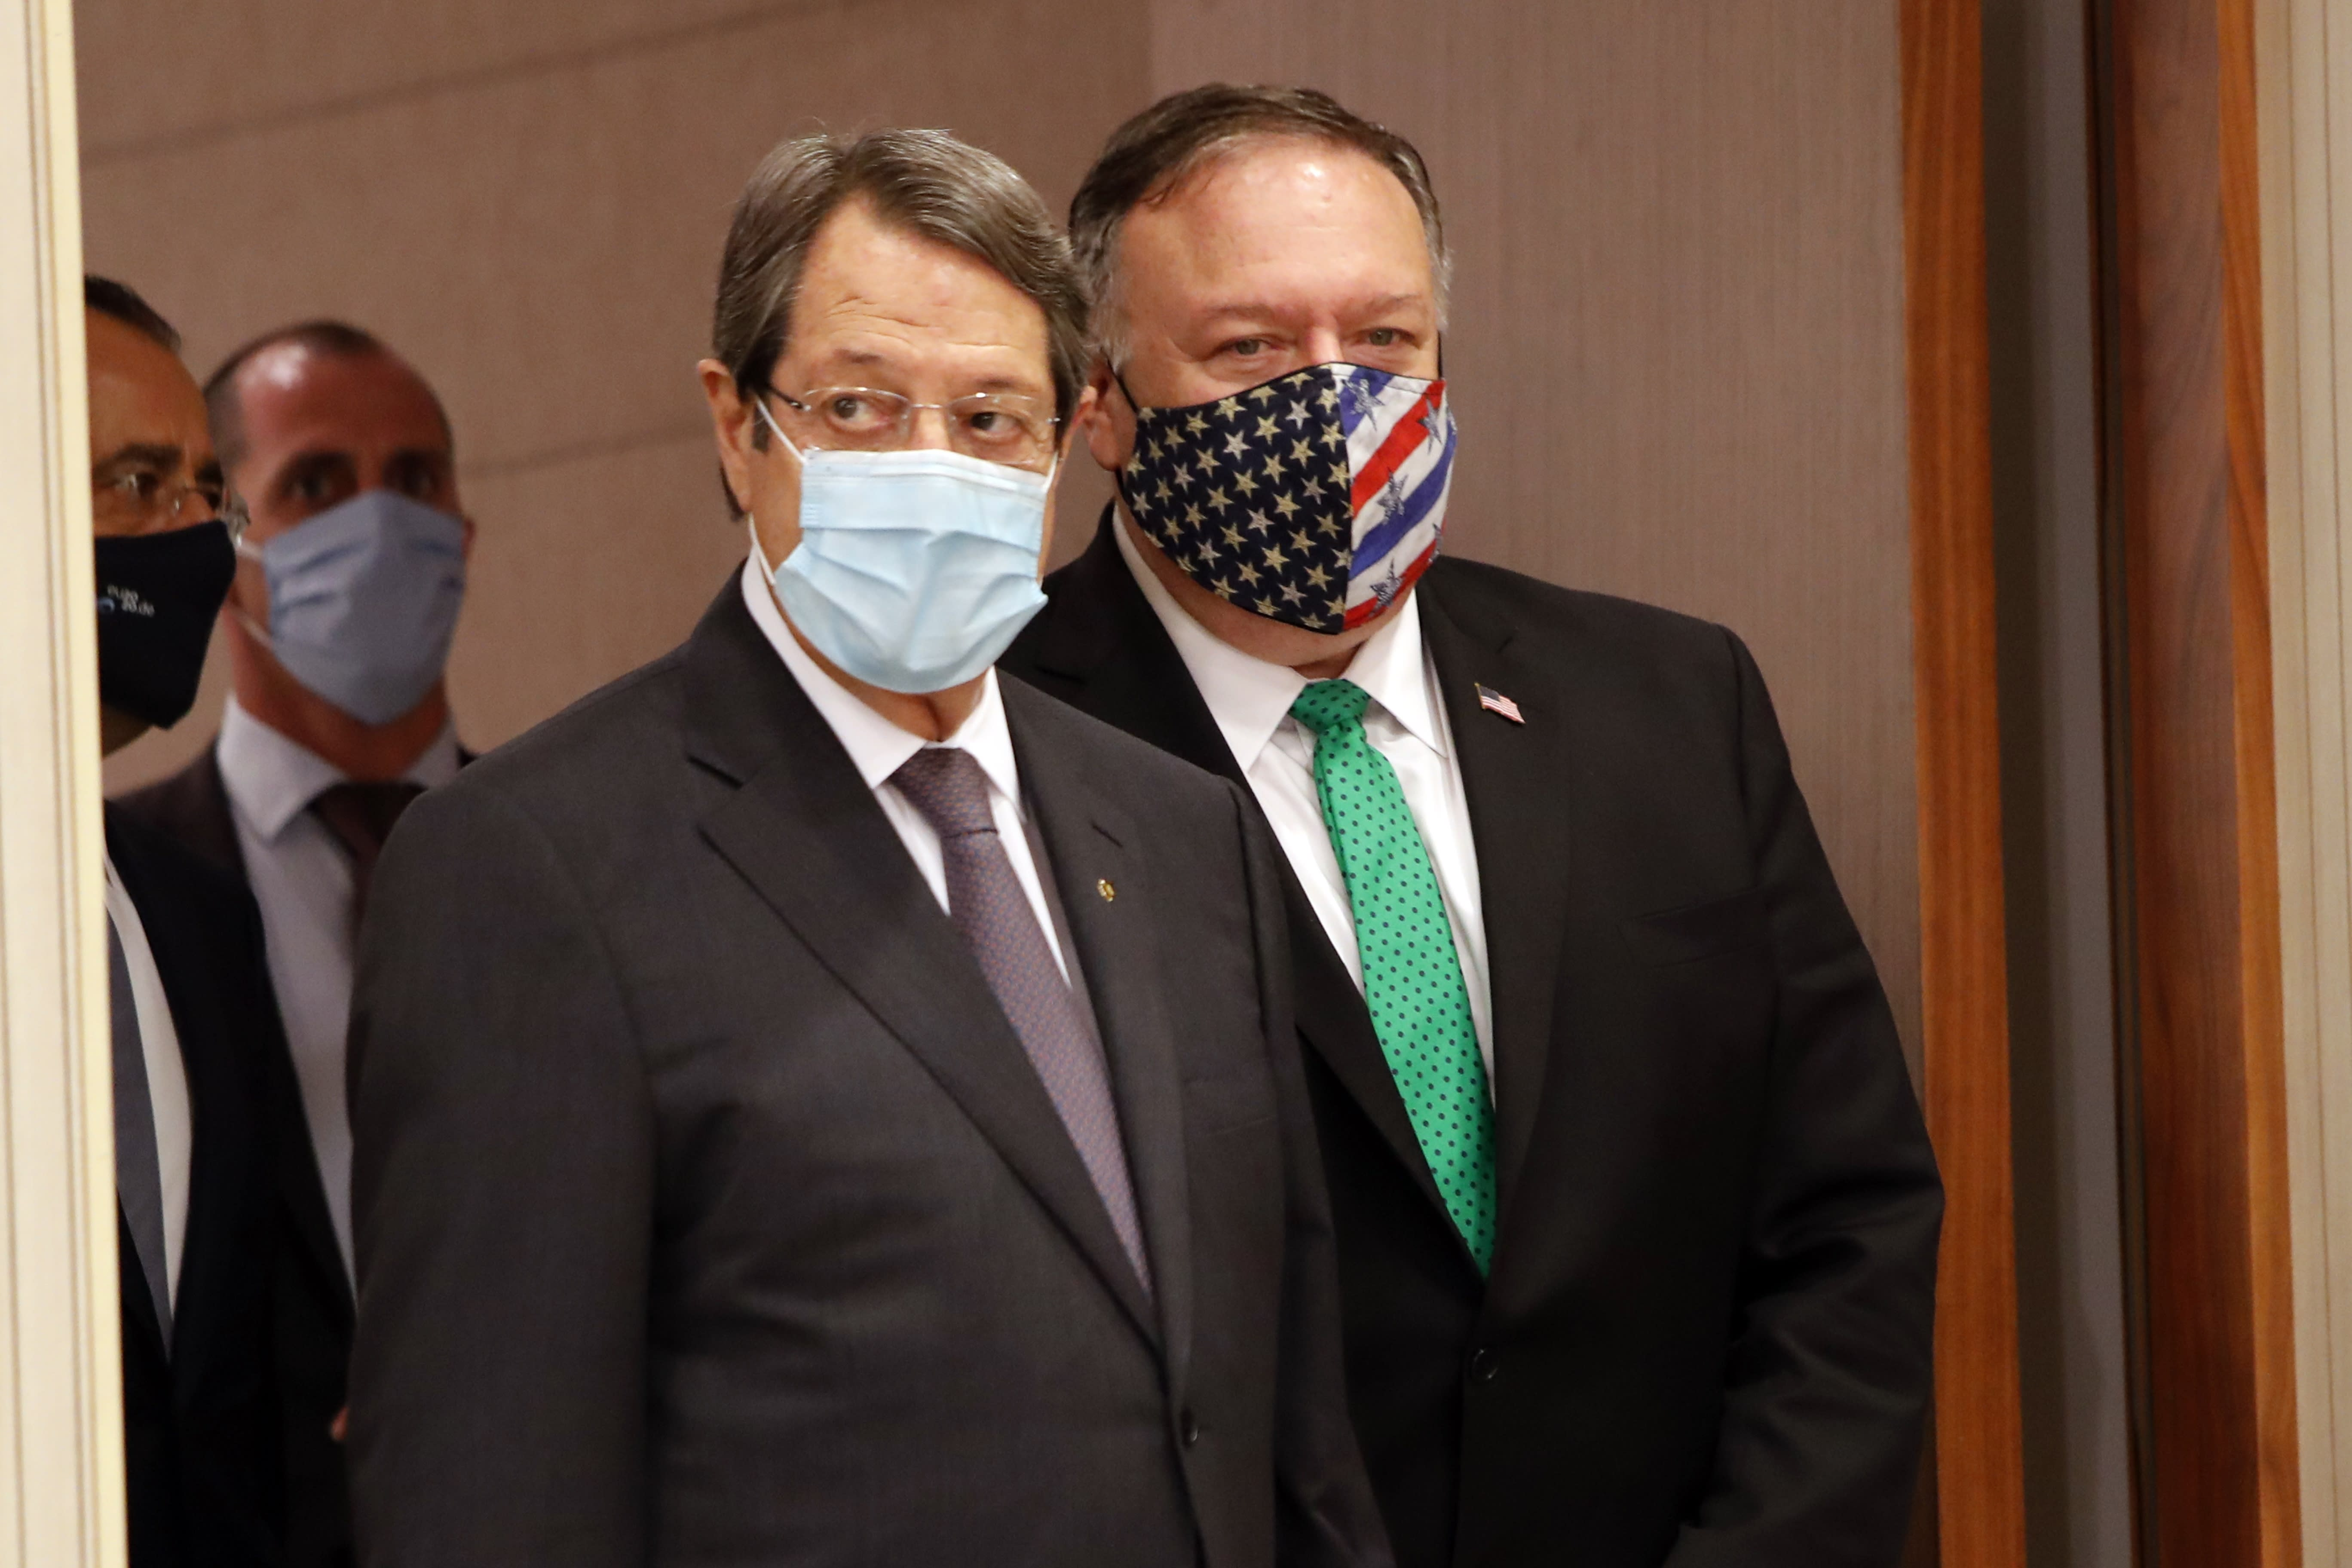 U.S. Secretary of State Mike Pompeo, right, Cypriot President Nicos Anastasiades arrive for a press conference at the Presidential Palace in Nicosia, Cyprus, Saturday, Sept. 12, 2020. Pompeo's lightning visit to Cyprus aimed to de-escalate a confrontation between Greece and Turkey over energy reserves in east Mediterranean waters and to affirm Washington's continued engagement in the tumultuous region four days after Russian Foreign Minister Sergey Lavrov pitched Moscow's offer to help ease tensions during his trip to the island nation. (AP Photo/Petros Karadjias, Pool)